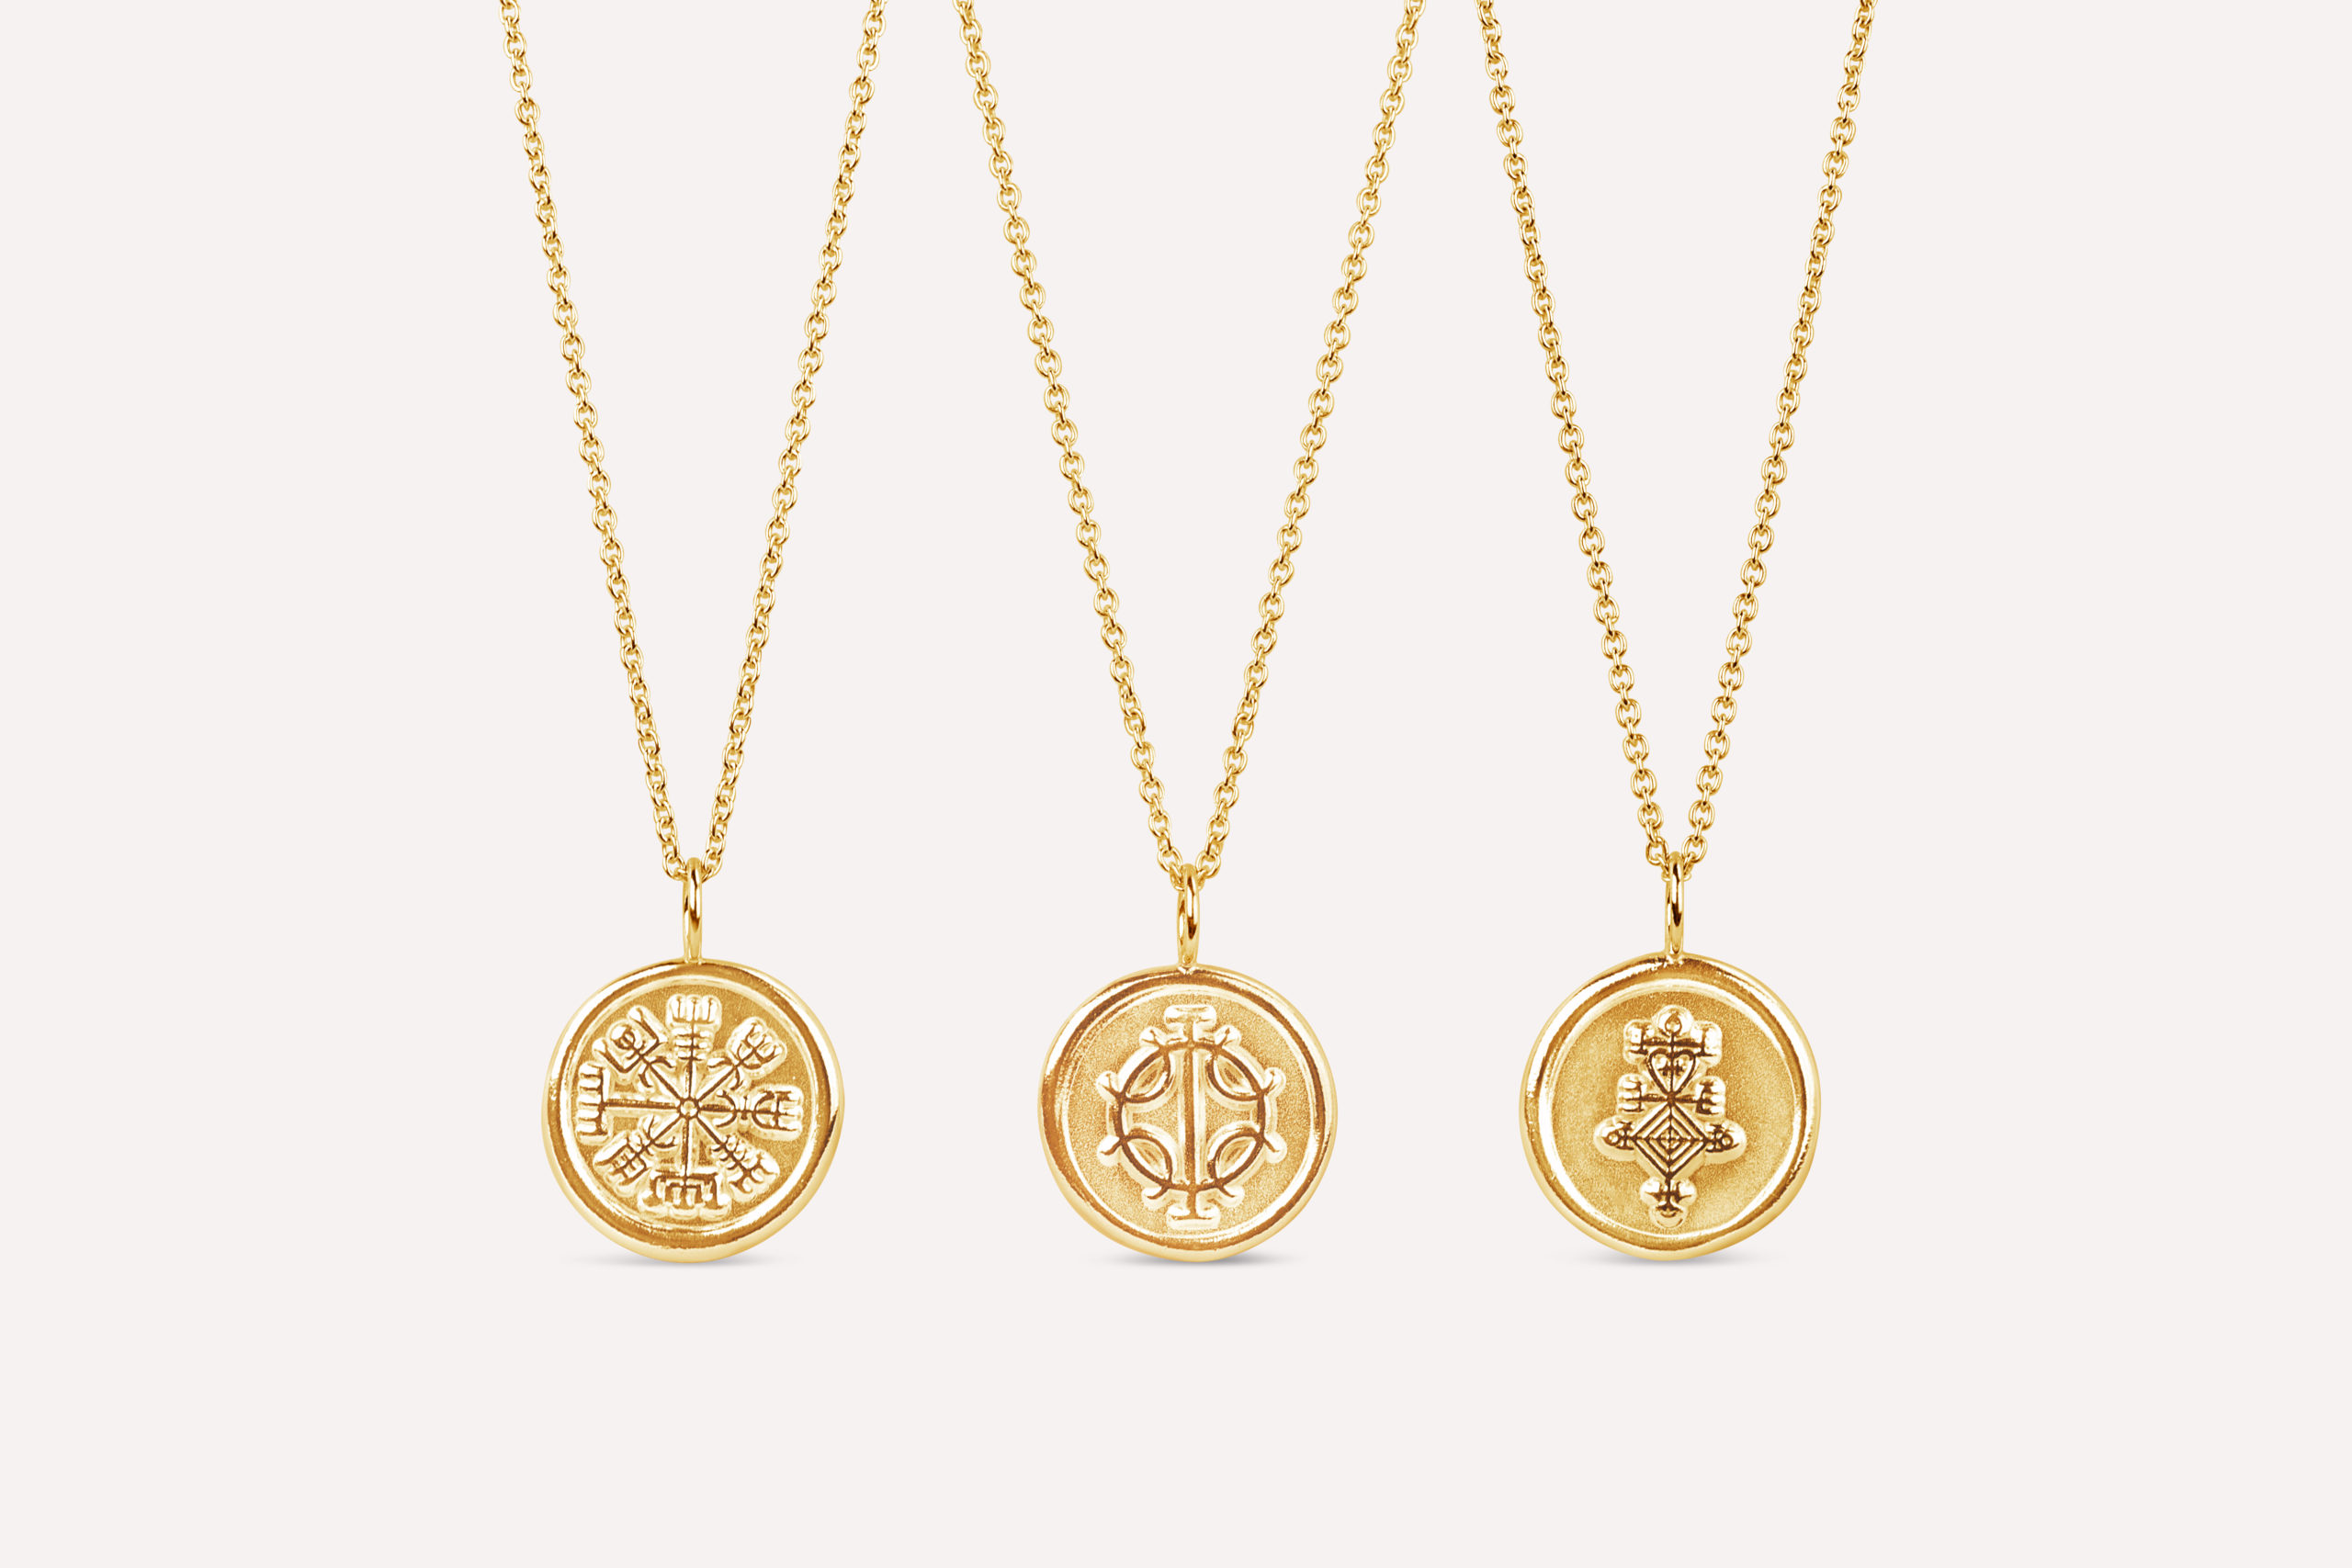 Gold icelandic magic stave necklaces